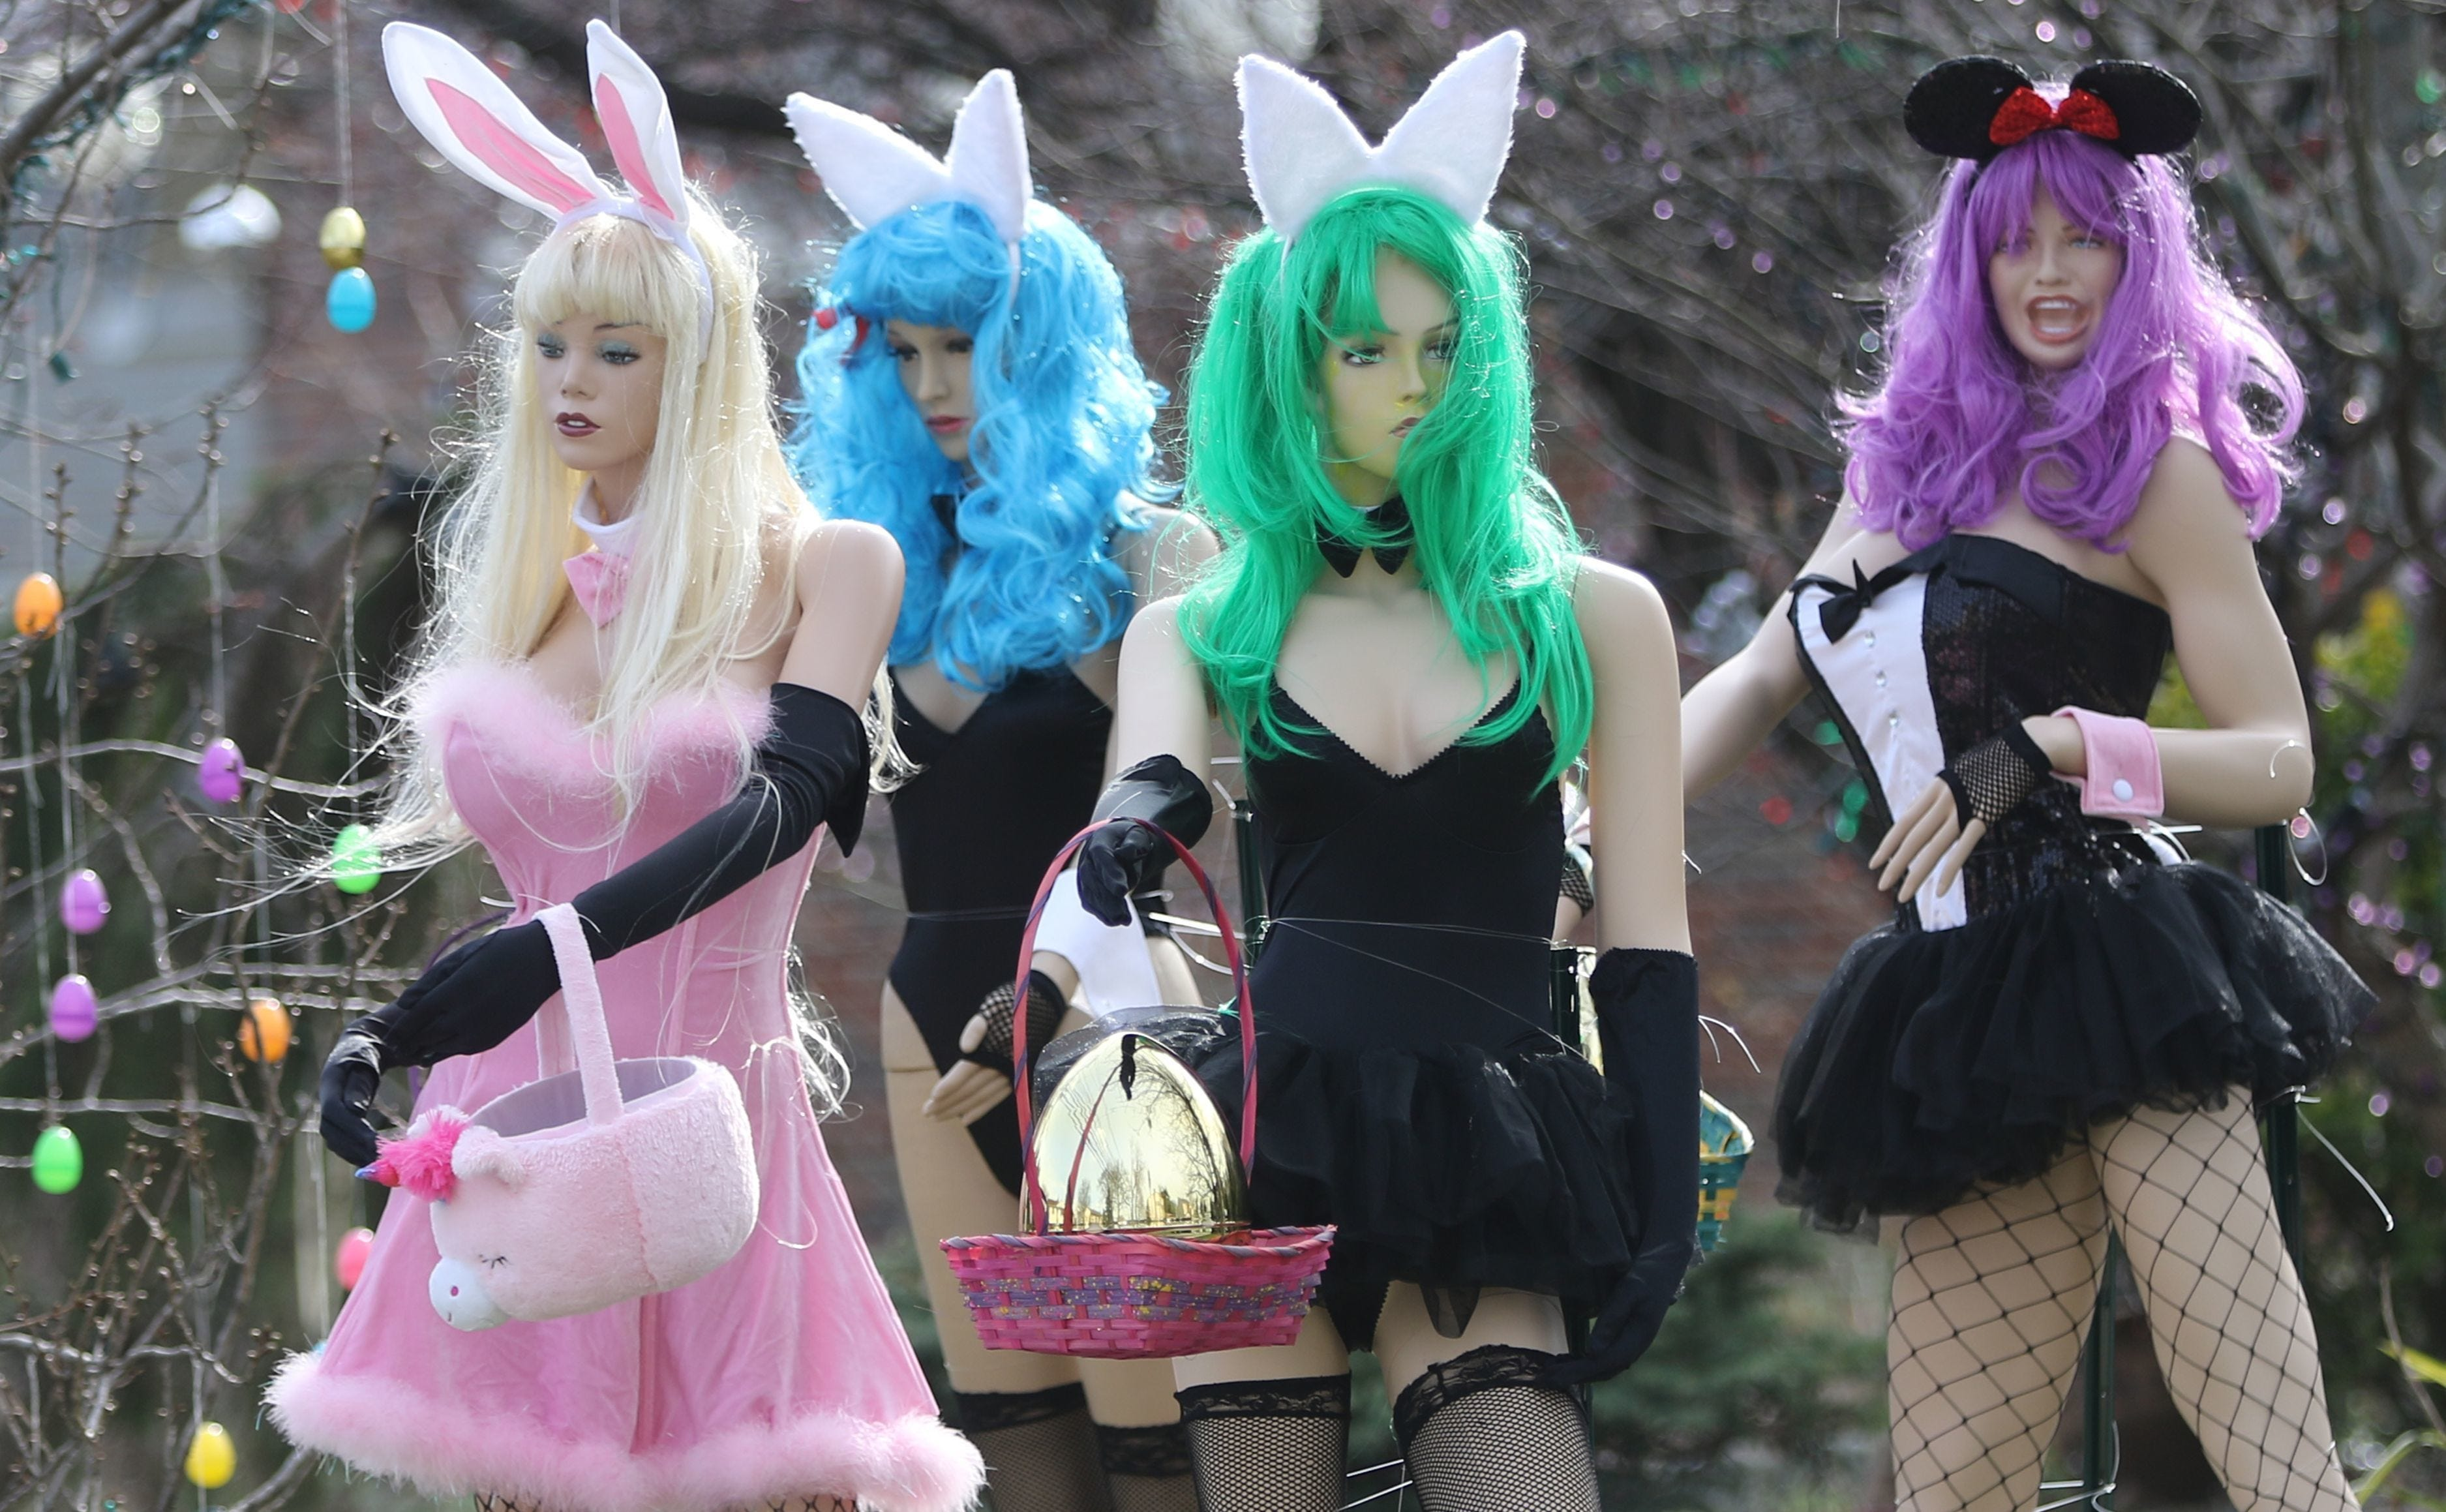 Easter Playboy bunnies, Roomba burglar, Taylor Swift: News from around our 50 states